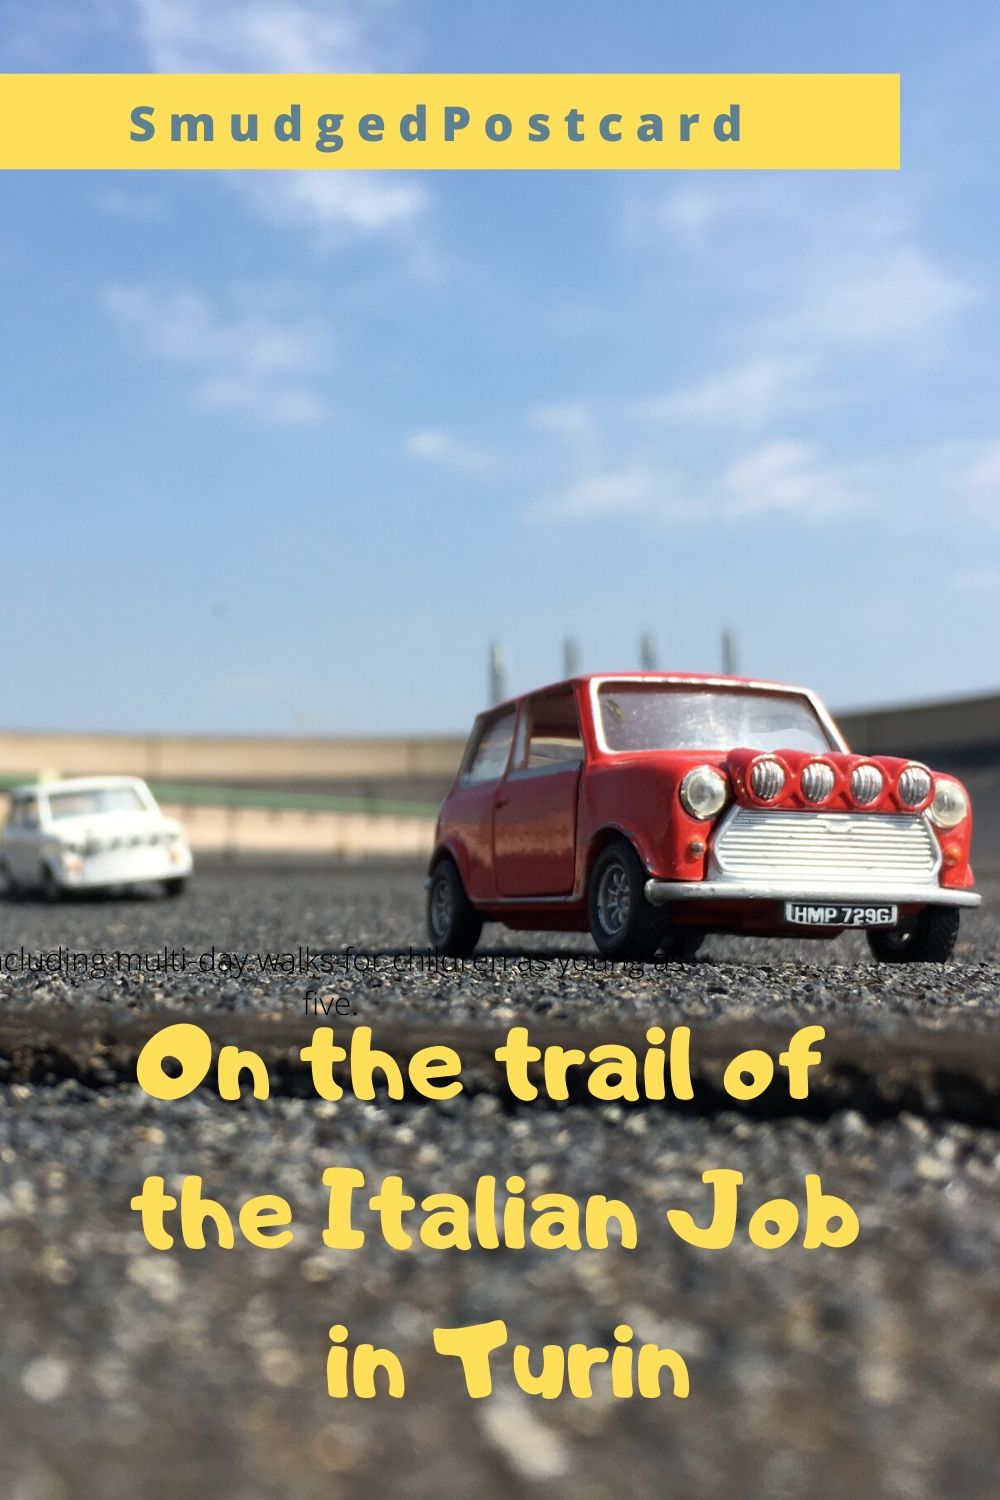 The Italian Job film locations: Lingotto factory test track